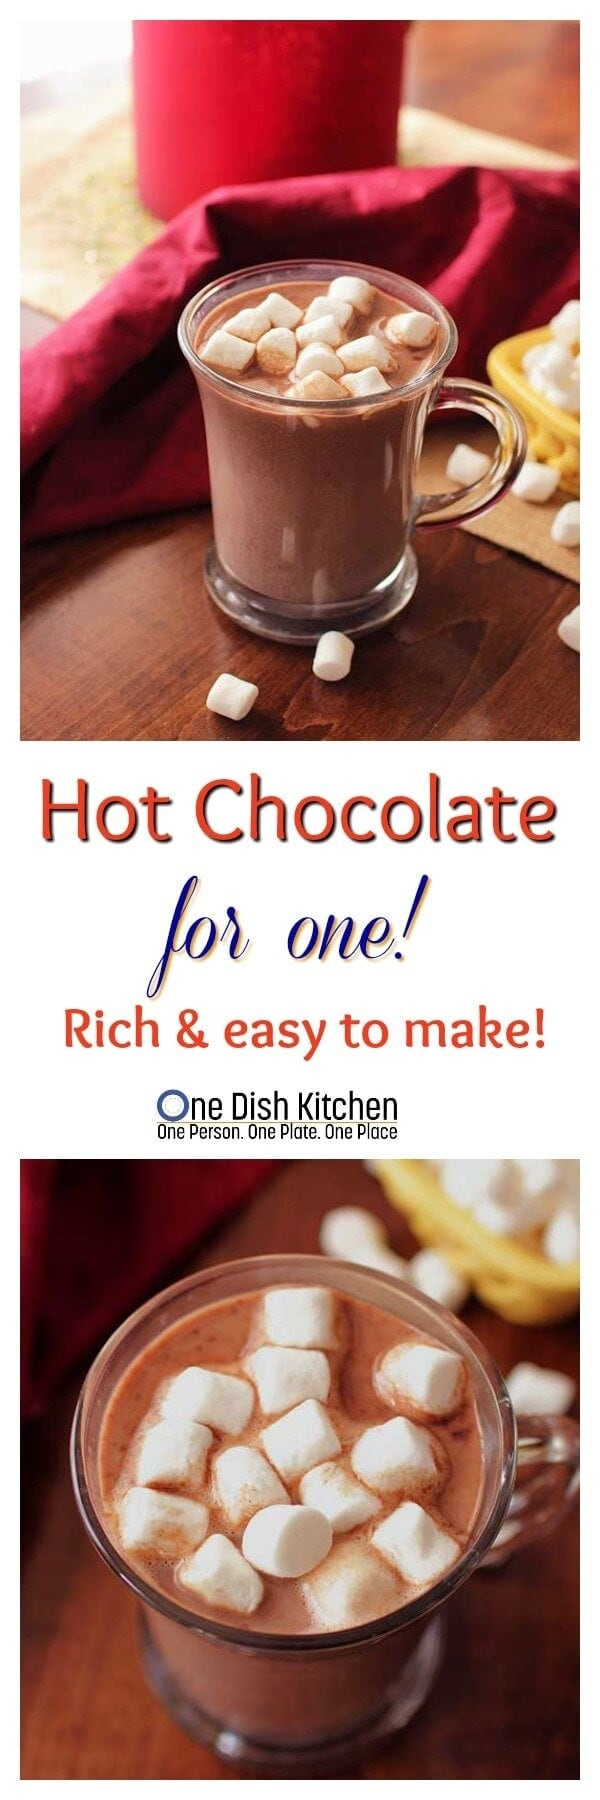 Rich, easy to make homemade hot chocolate for one. A single serving of the richest, most delicious hot chocolate. Made with milk, cocoa powder and sugar.   One Dish Kitchen